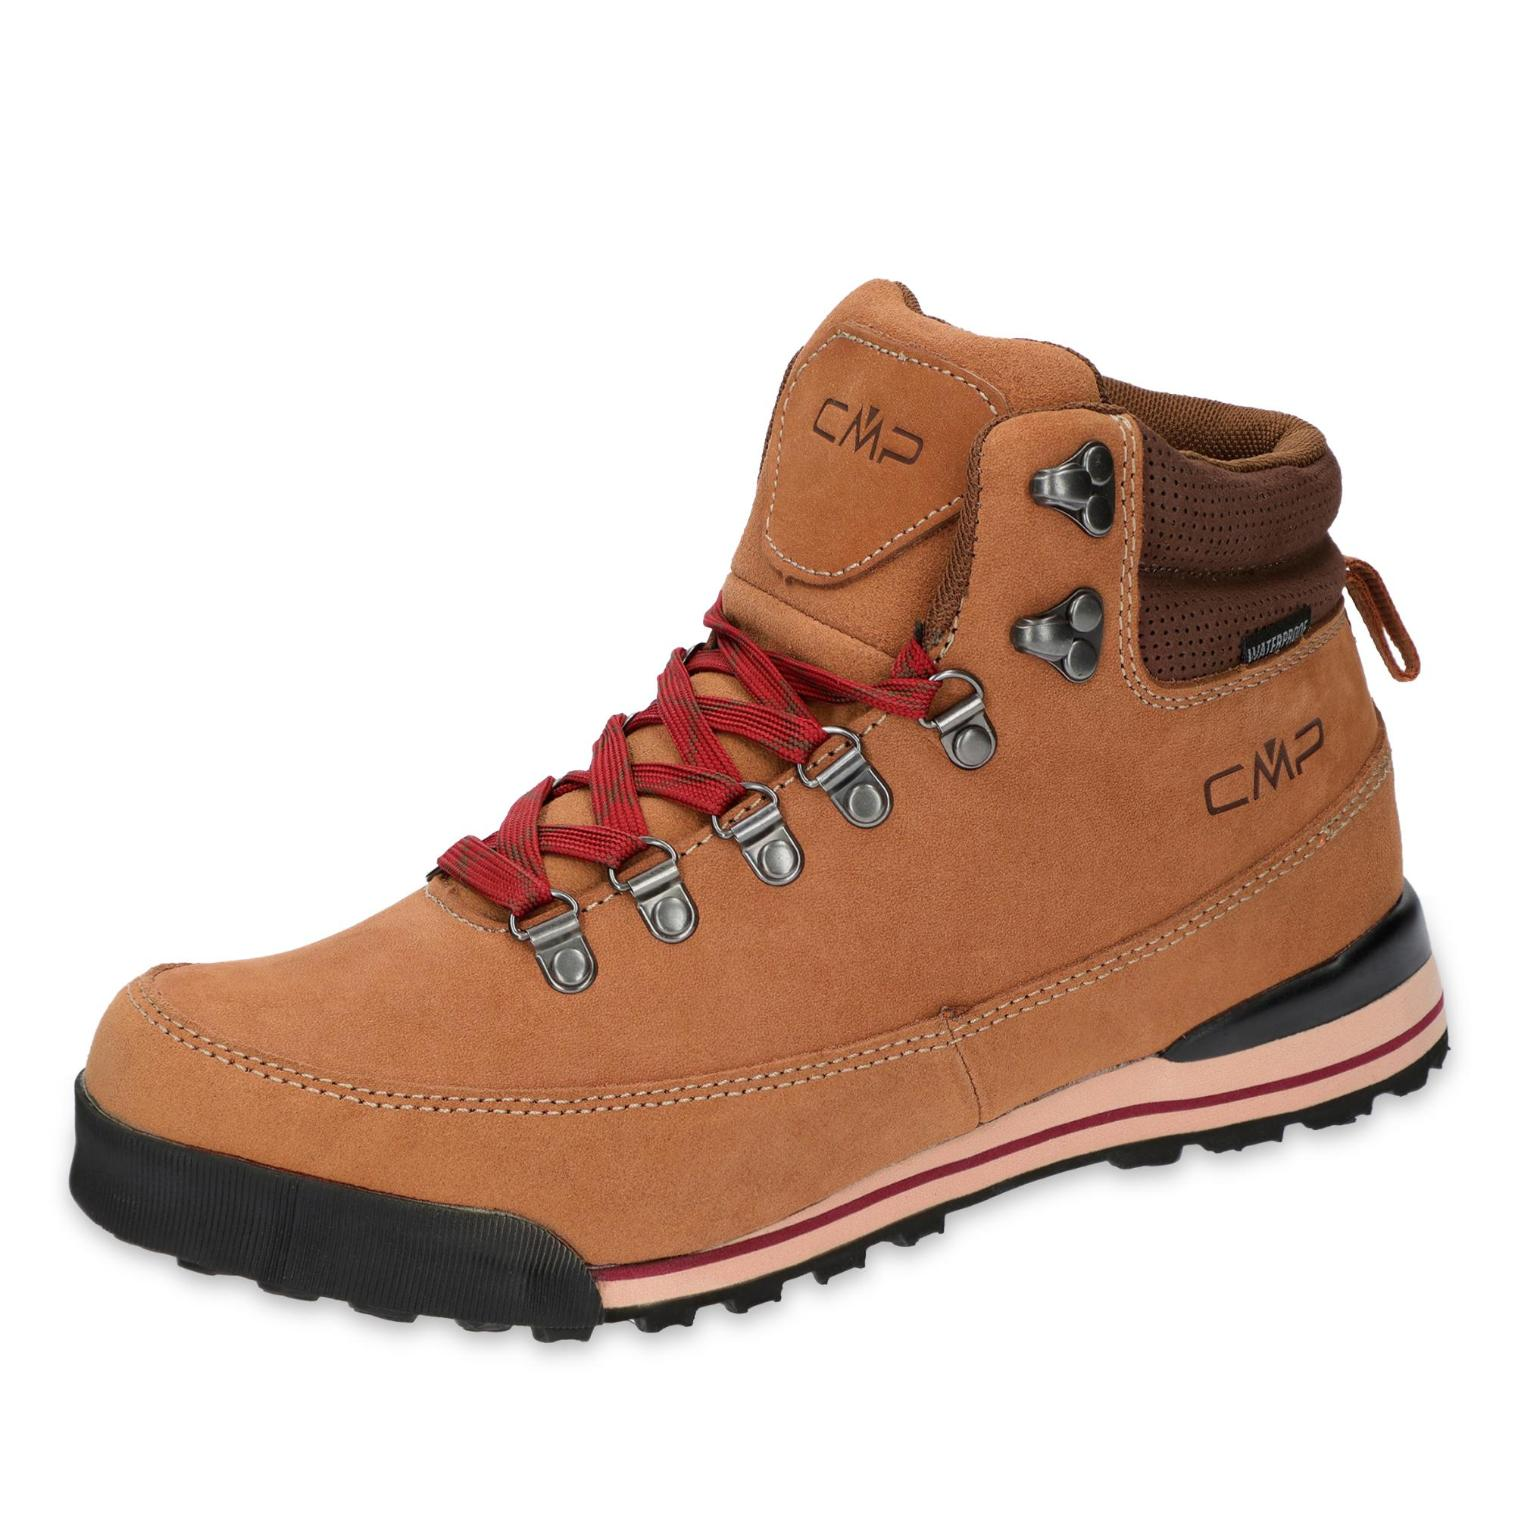 CMP Heka WMN Clima Protect Wanderstiefel 9sTvC